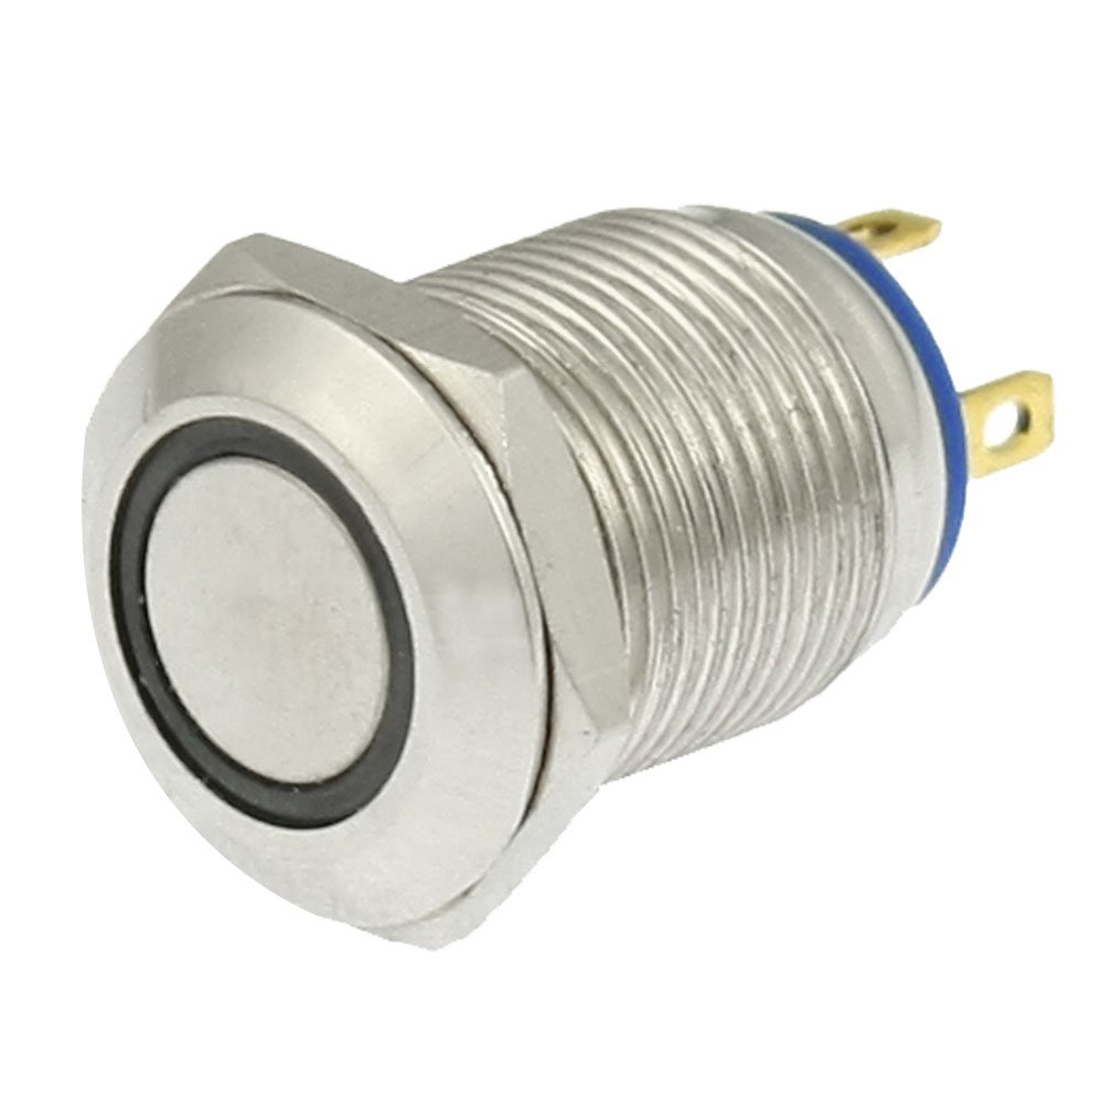 MYLB-Angel Eye Blue LED Light 3V 12mm Stainless Steel Momentary Push Button Switch NO